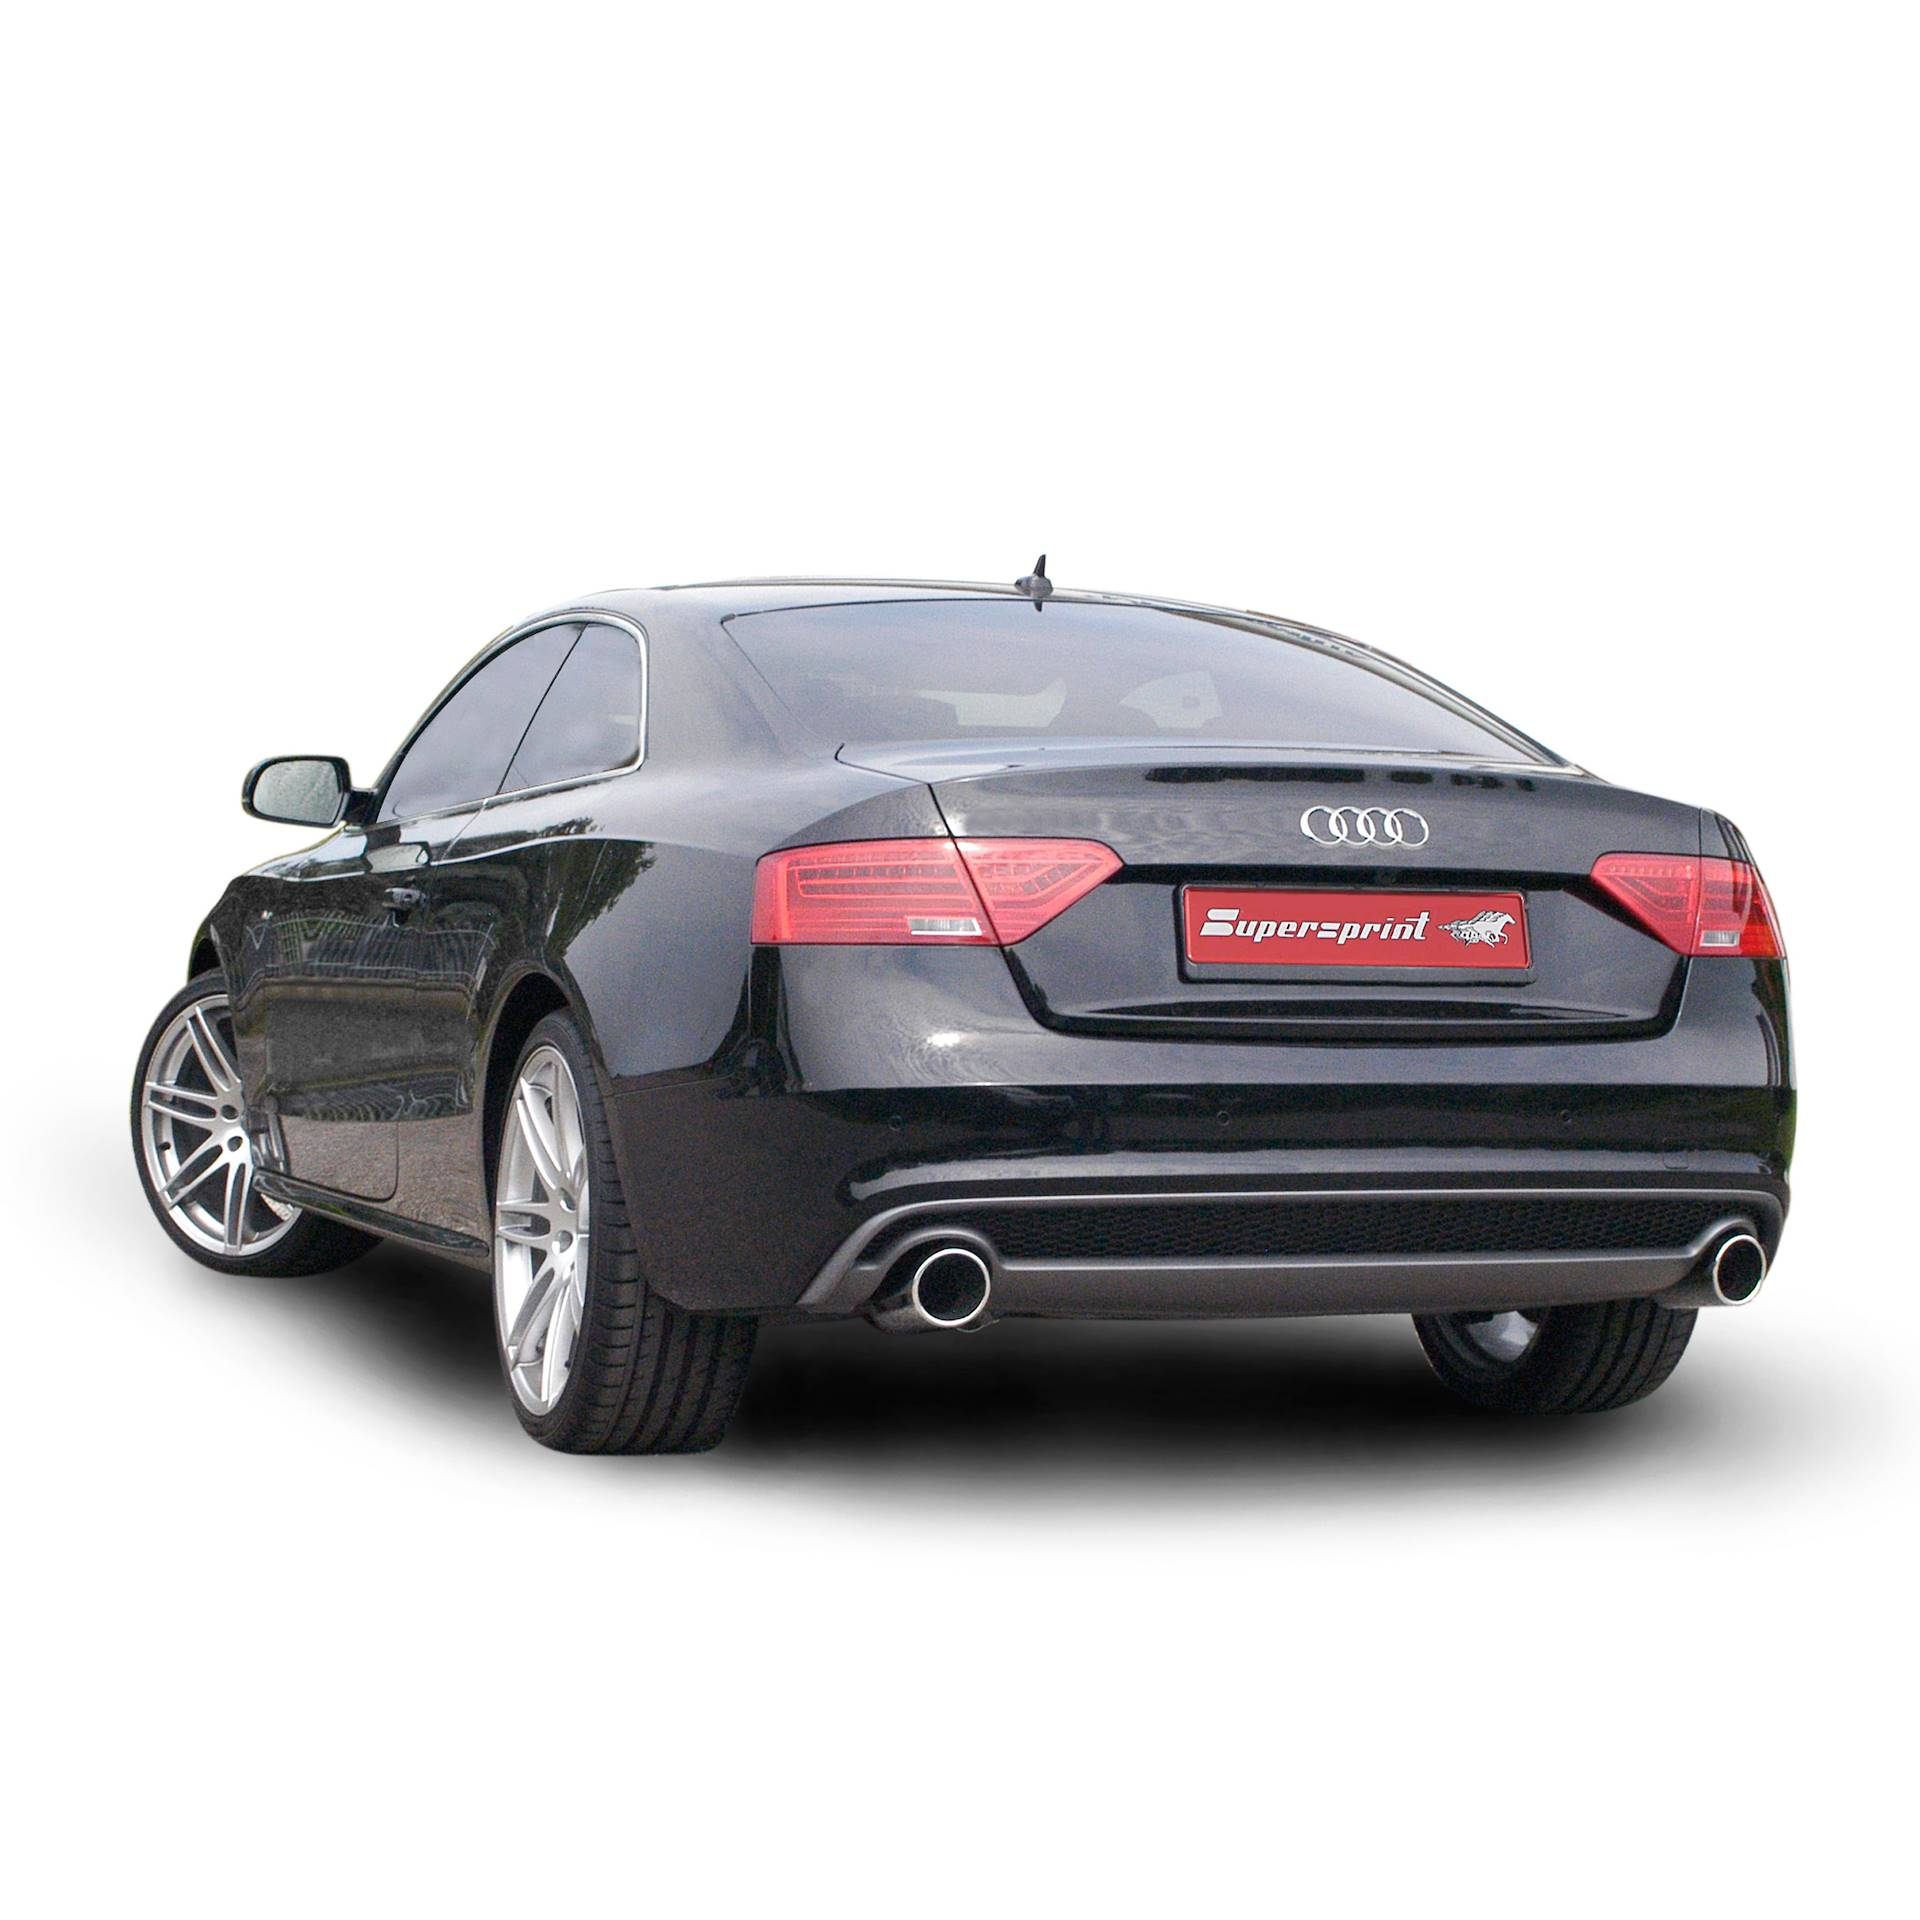 Audi - AUDI A5 Coupè/Cabrio 1.8 TFSI (160 - 170 - 177 PS) '08 ->(Ø80mm)